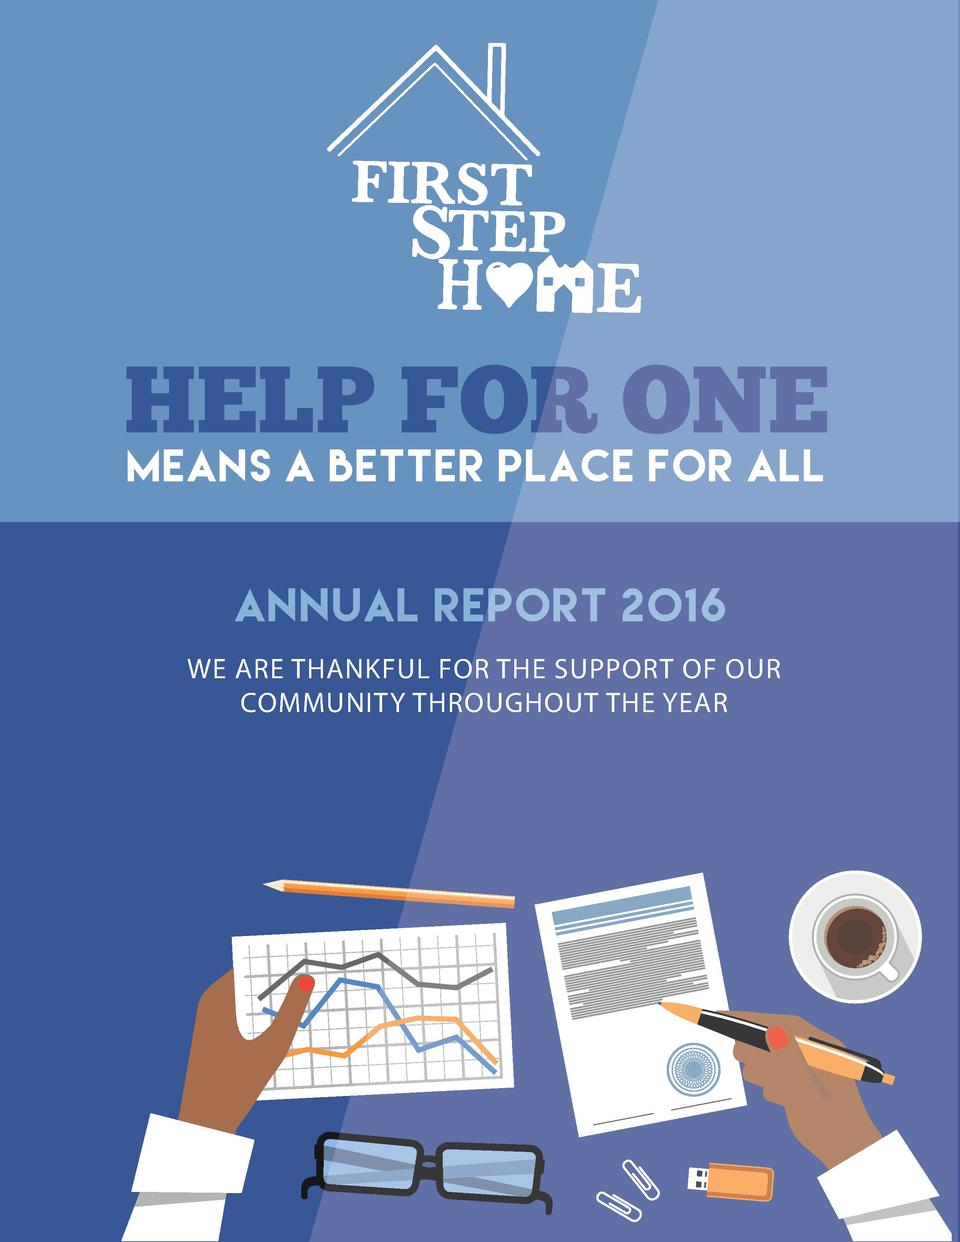 HELP FOR ONE MEANS A BETTER PLACE FOR ALL  ANNUAL REPORT 2016 WE ARE THANKFUL FOR THE SUPPORT OF OUR COMMUNITY THROUGHOUT ...